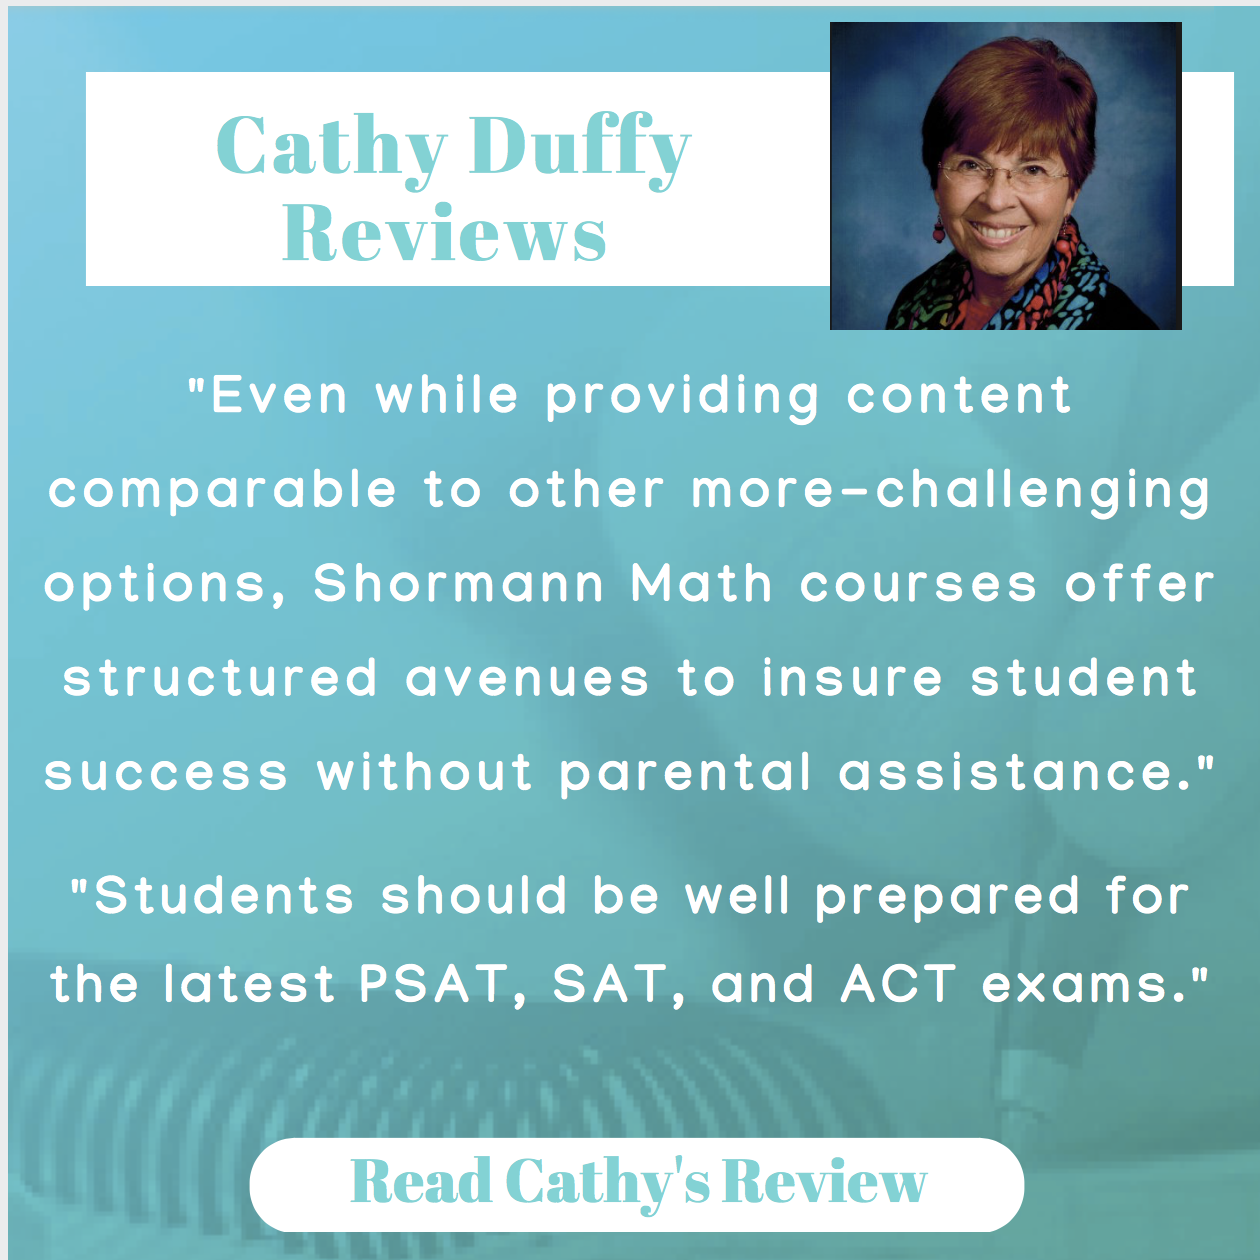 2018-ad-for-cathy-duffy-review-.png